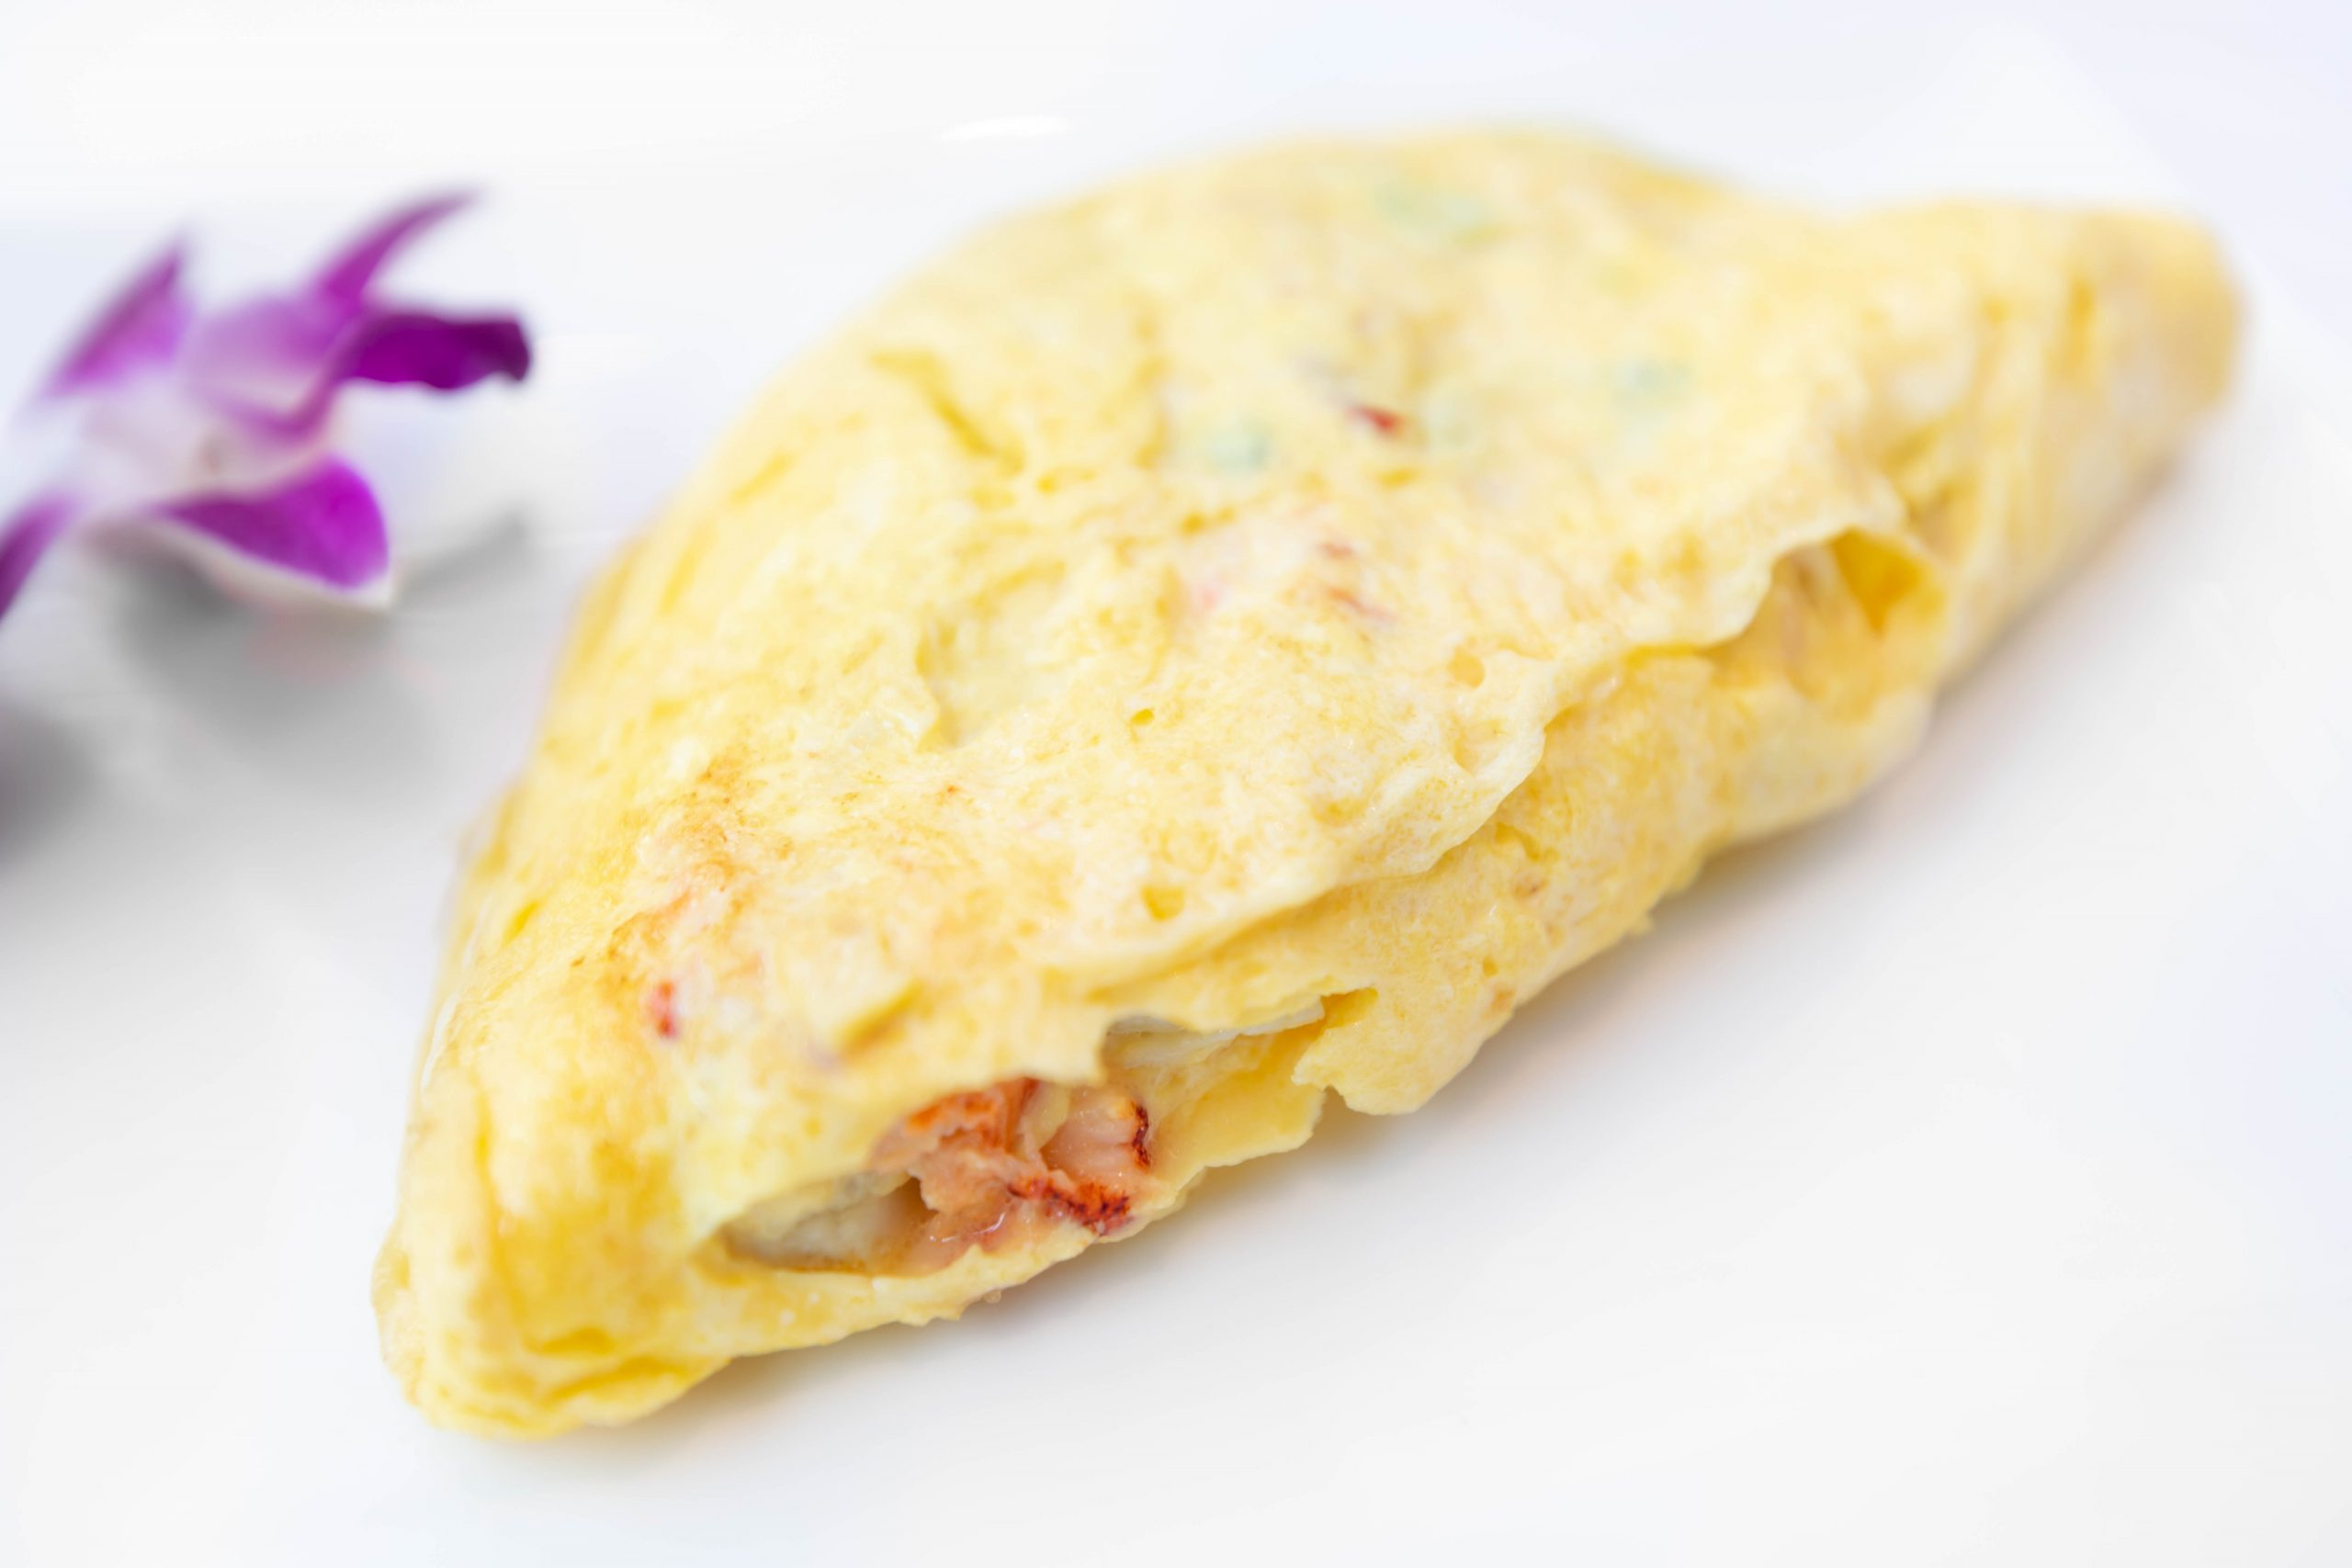 Palmetto Omelet with Lump Crab and Lobster at Palmetto Café Inside Belmond Charleston Place Luxury Hotel Written & Photographed by Annie Fairfax